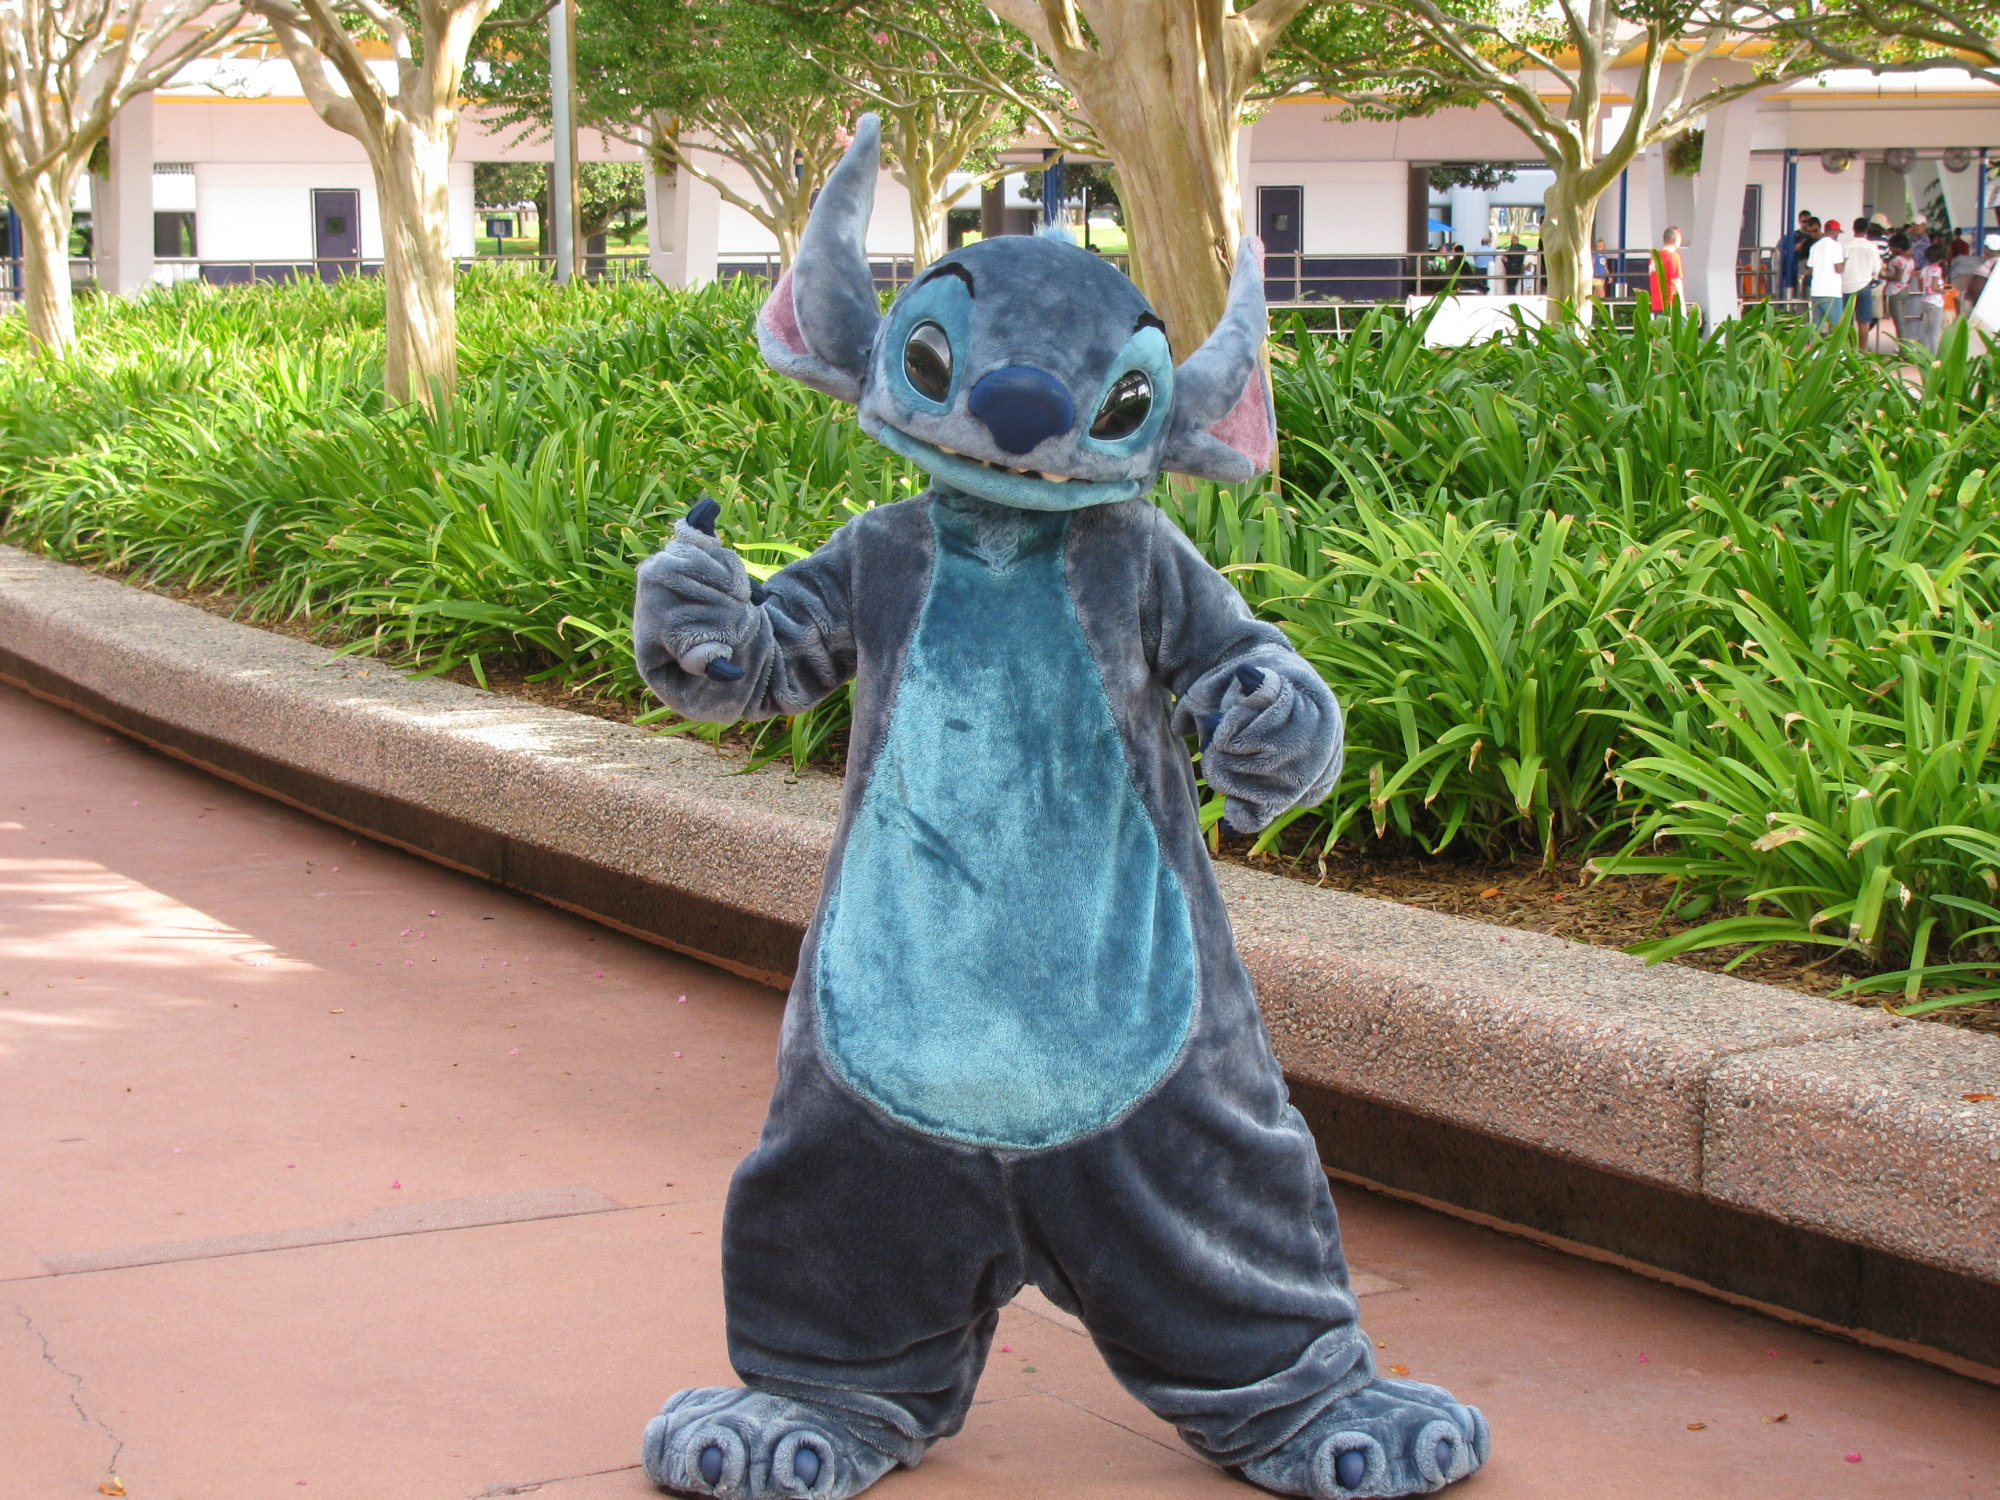 The Cast Members help make the magic and save the day at Walt Disney World |PassPorter.com